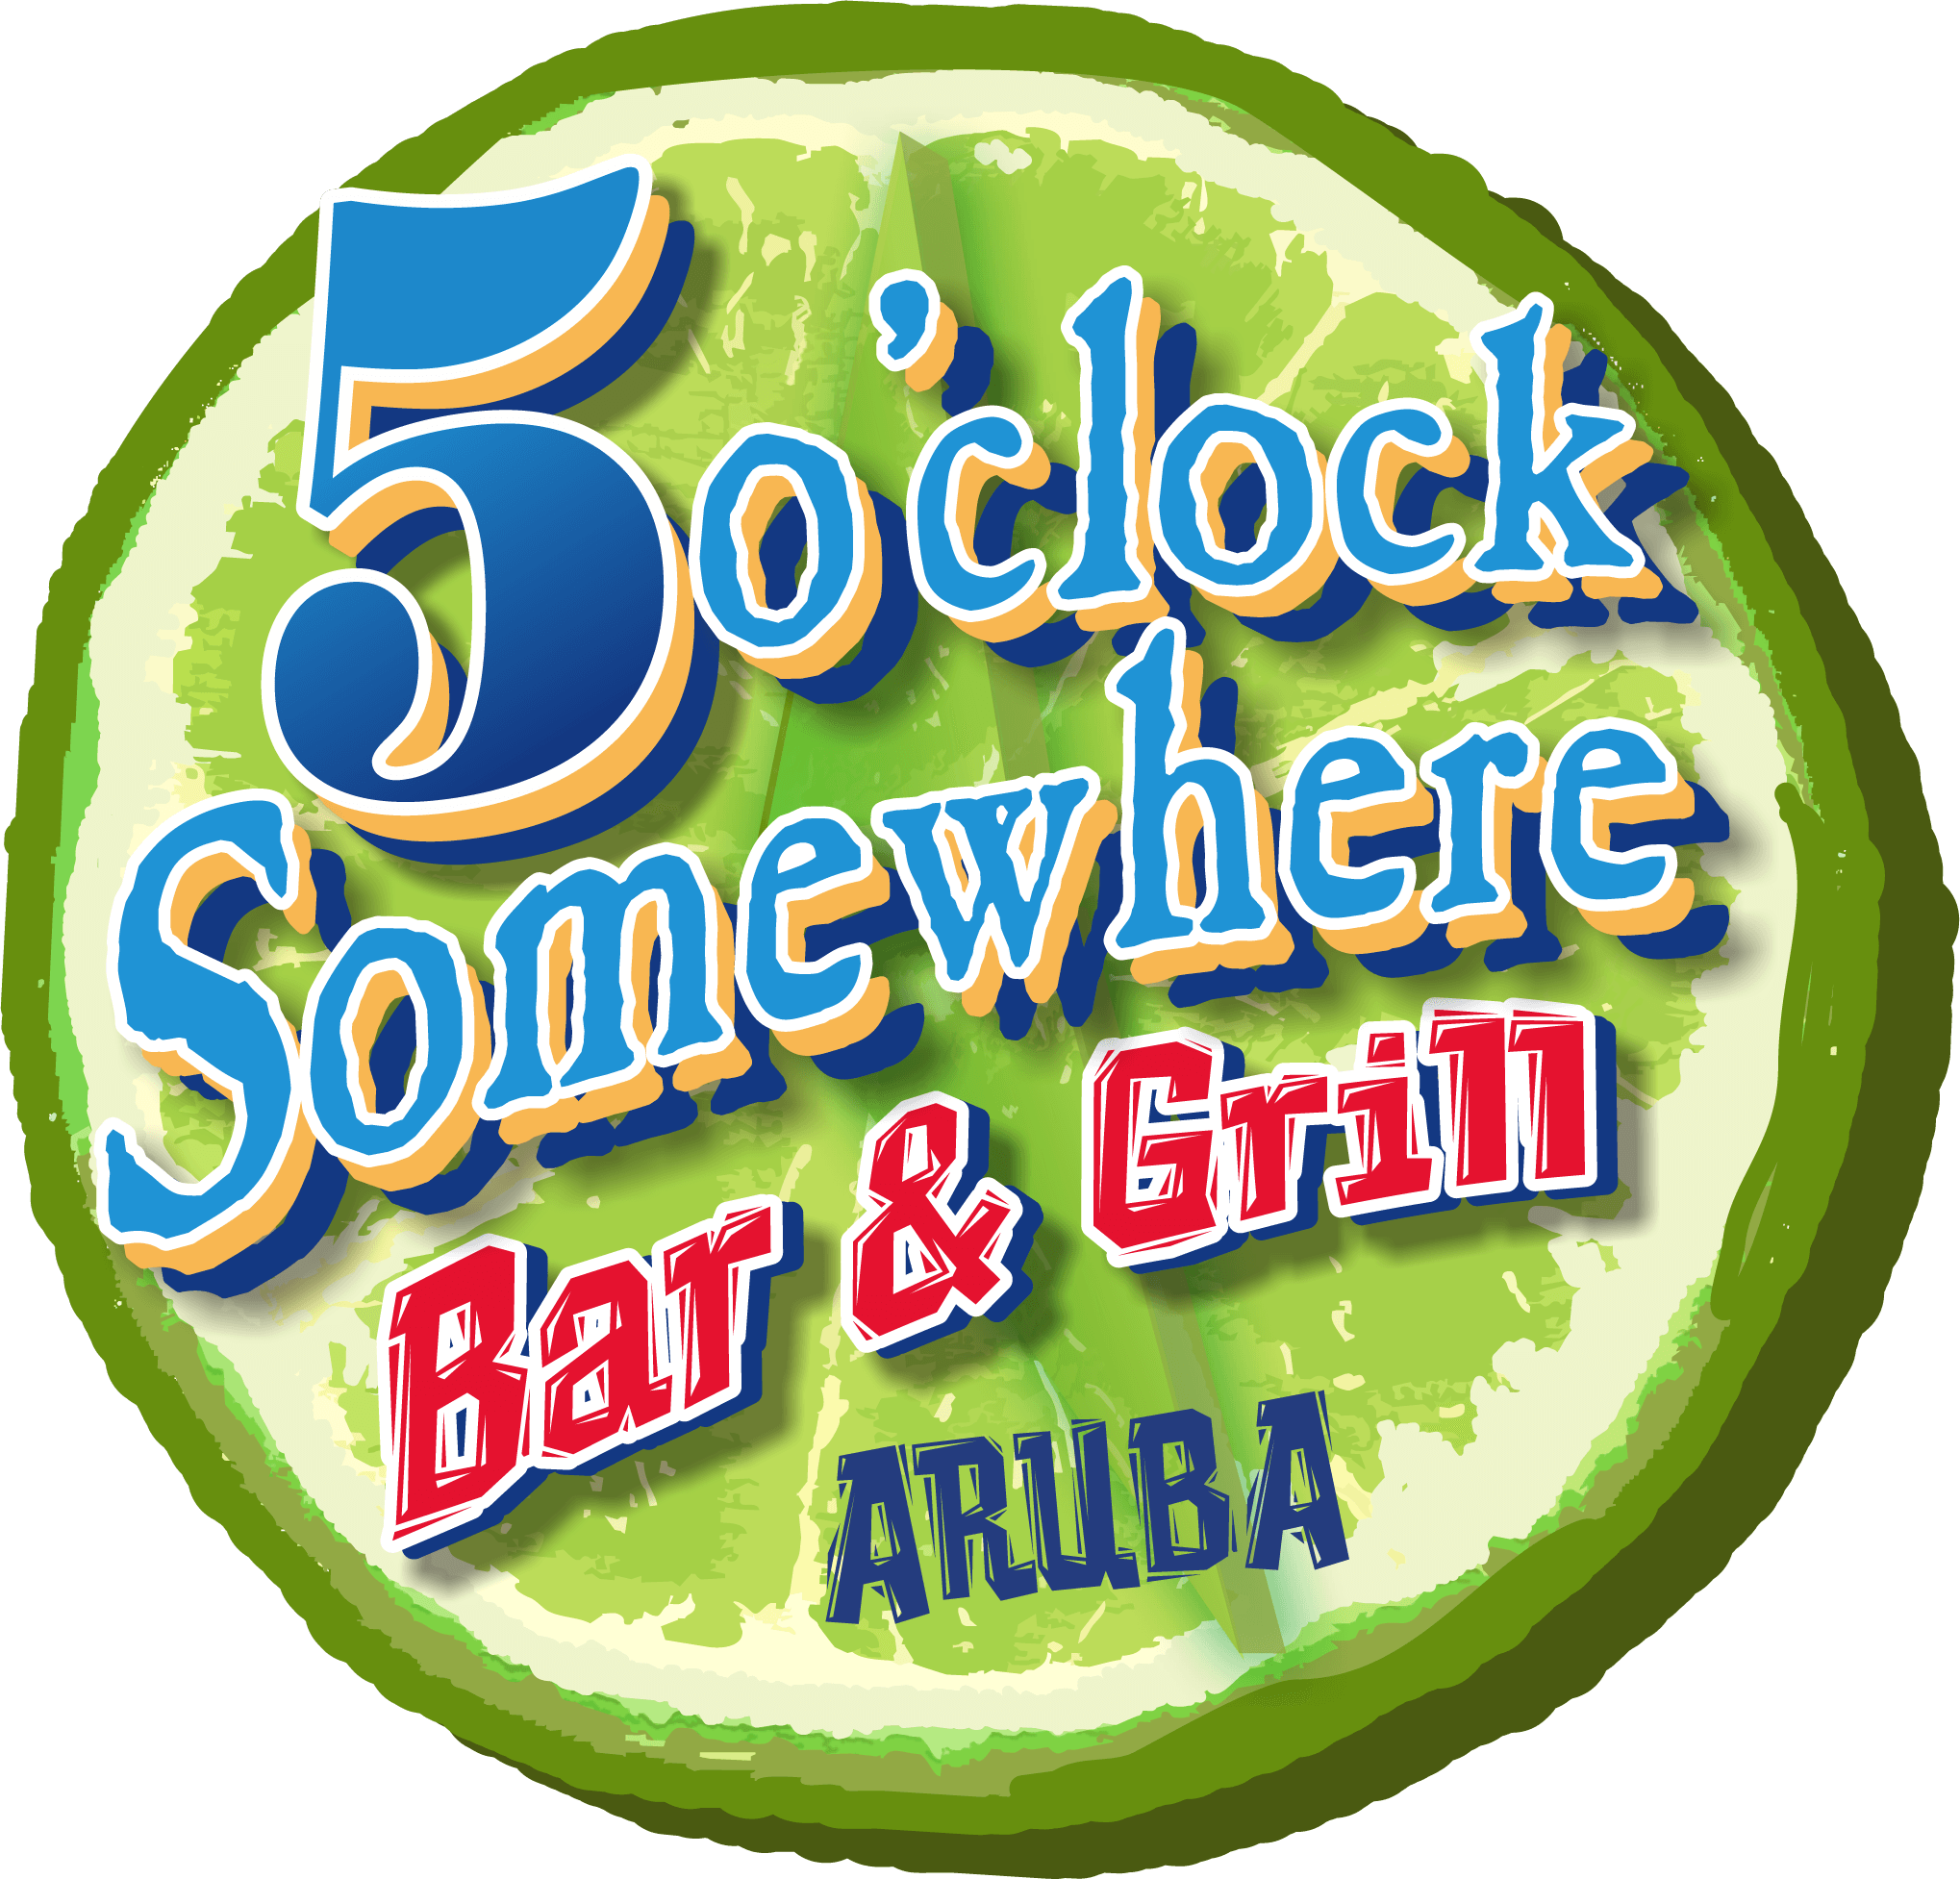 5 O'clock Somewhere Aruba